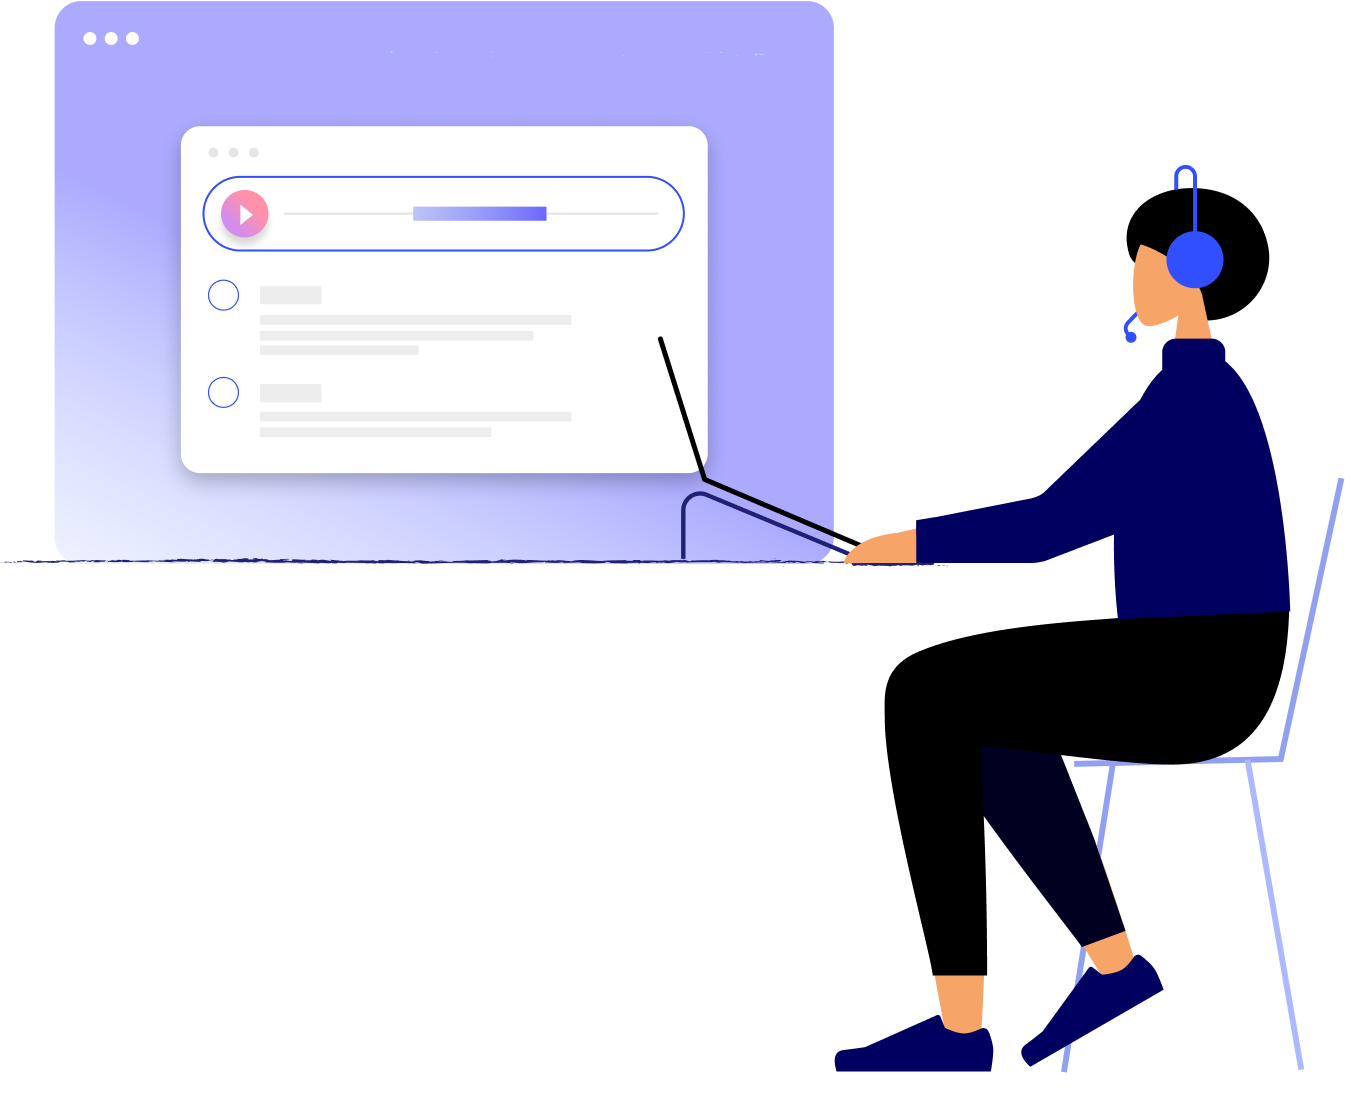 Call and screen recording hero illustration